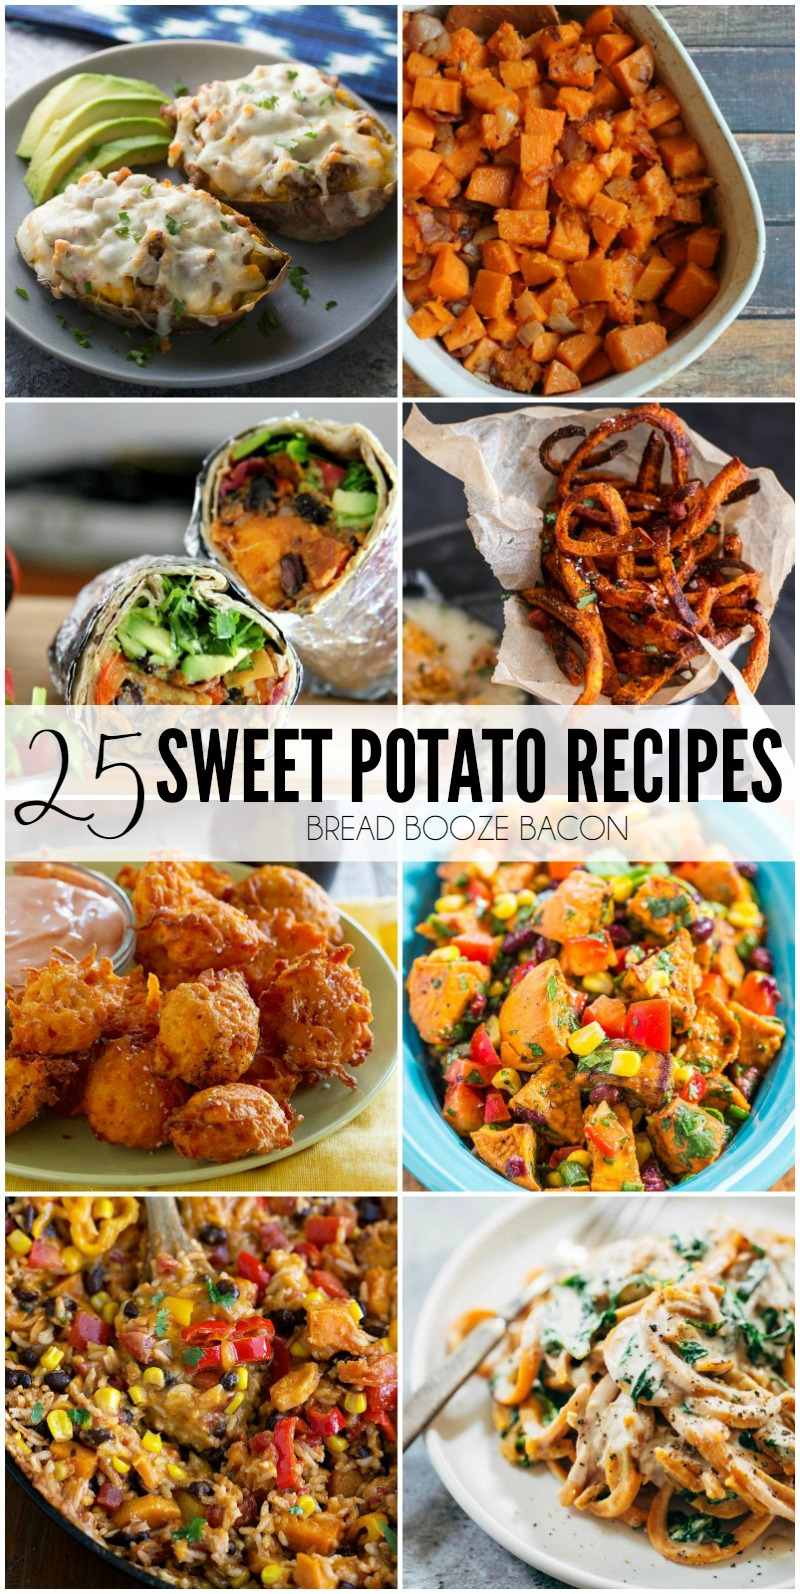 I'm kind of obsessed with sweet potatoes. They're just so damn good! I want to make them every way imaginable, and with these 25 Sweet Potato Recipes now I can! Get ready to step up your sweet potato game kids.